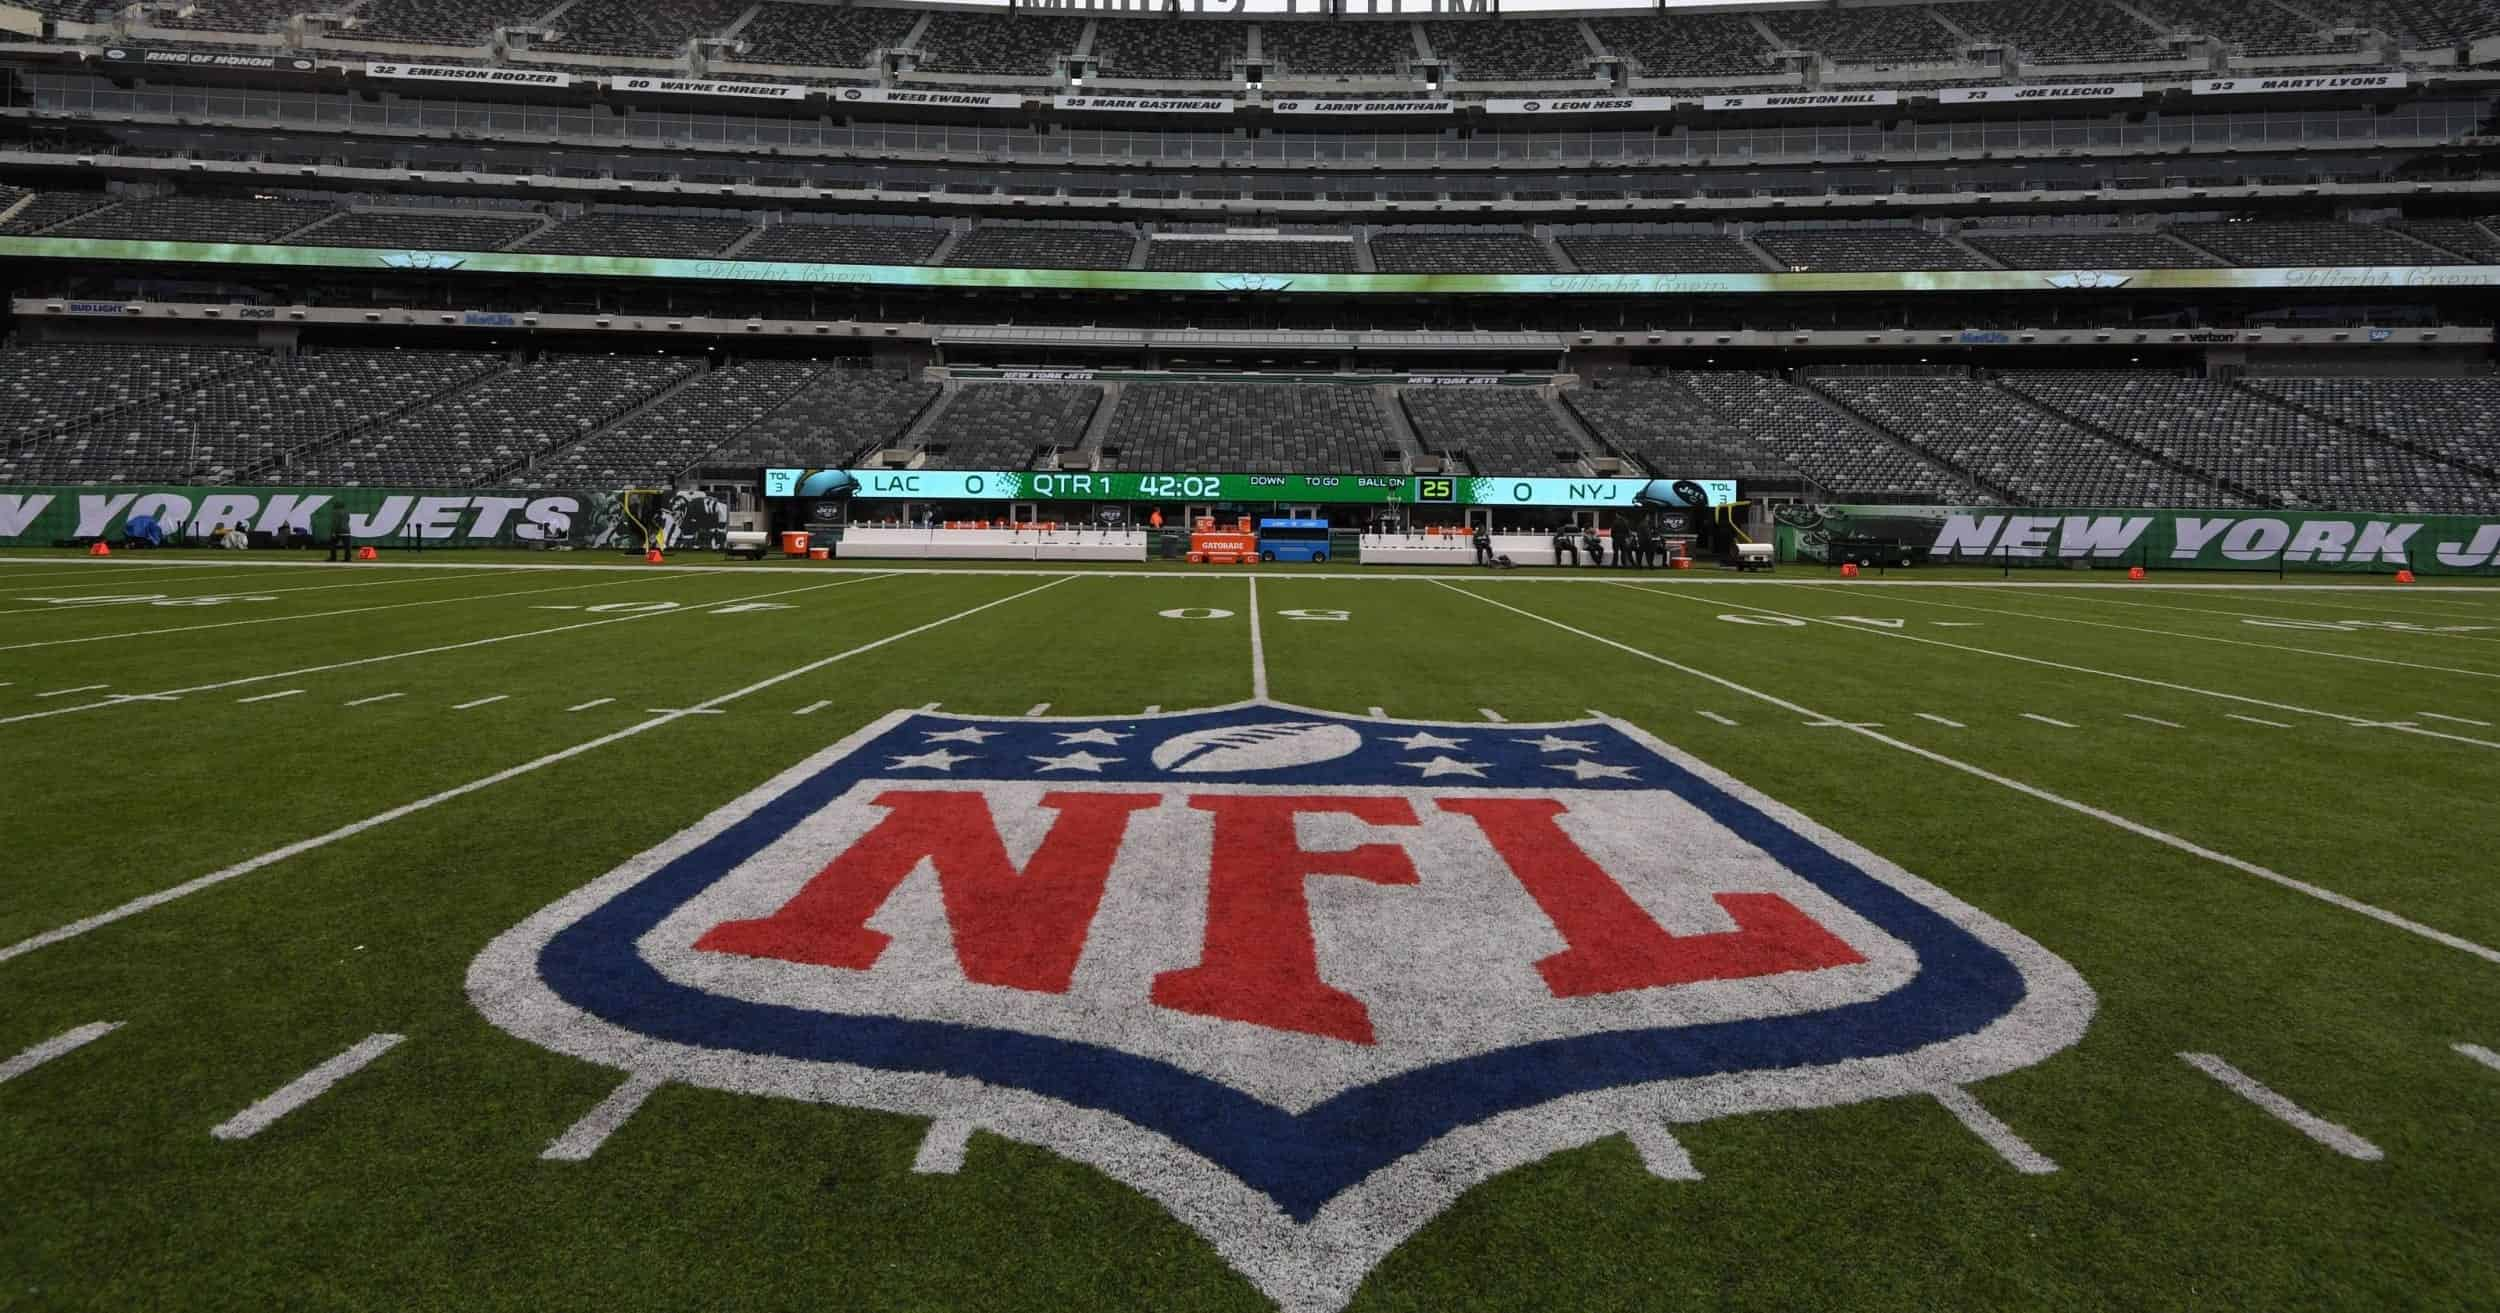 Nfl Schedule 2019 Nfl Schedule What The Nfl Got Right And Wrong With Opening Week